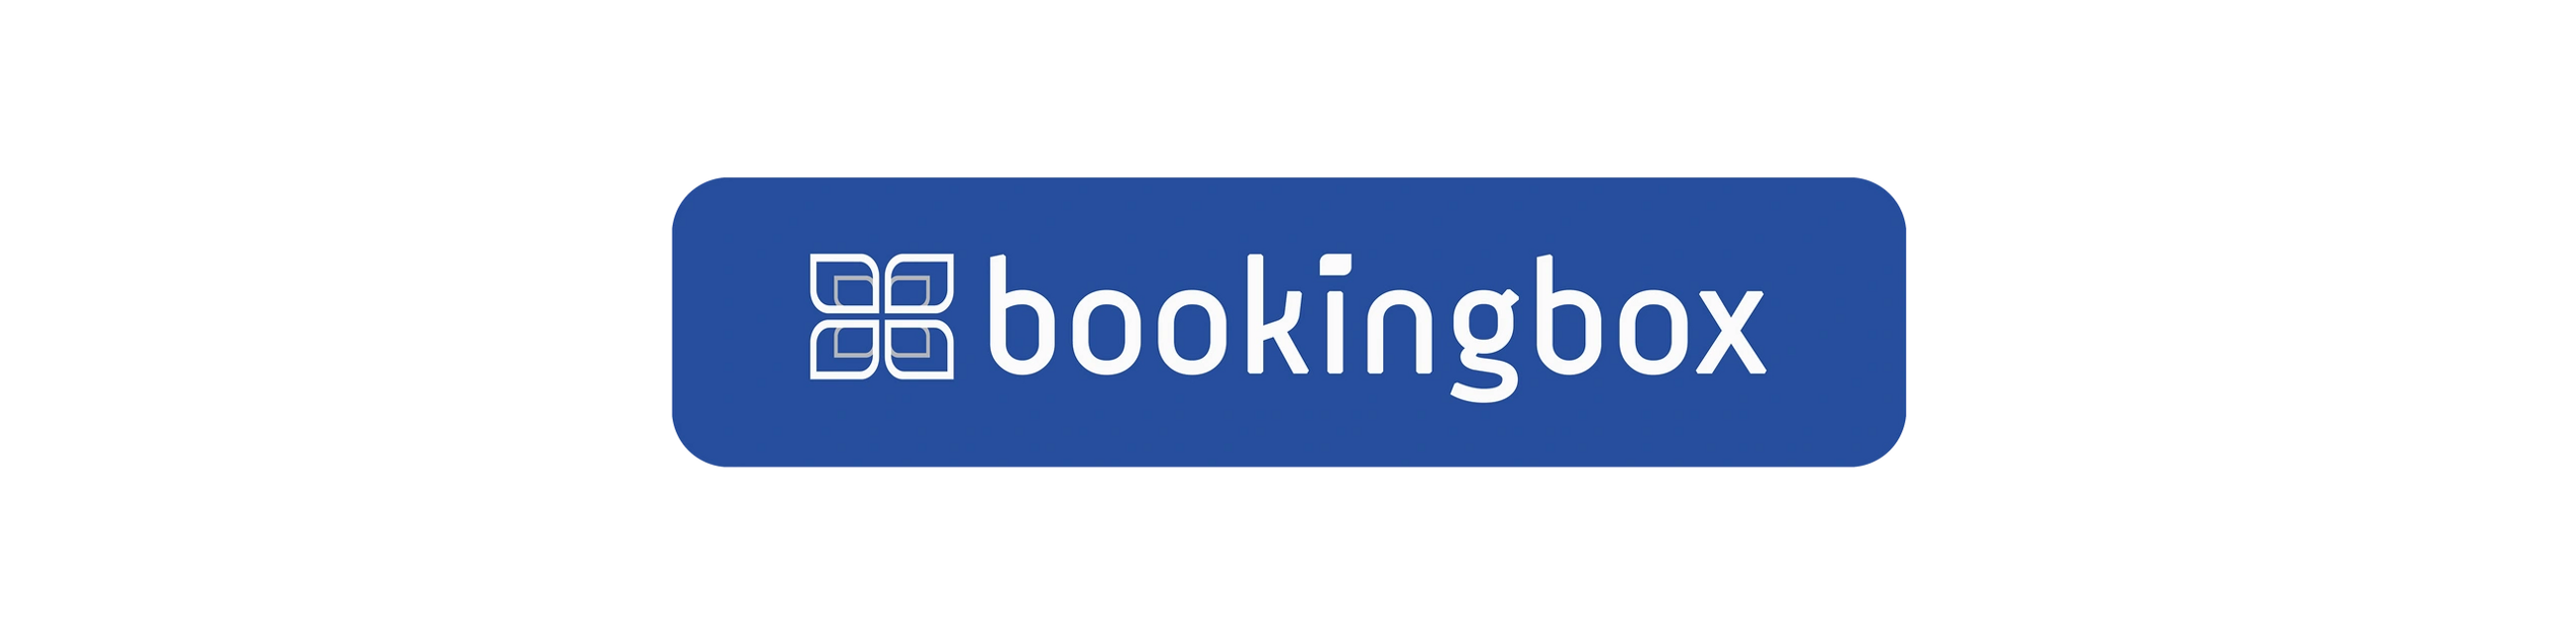 Bookingbox ® is a registered trade mark of Bookingbox Limited